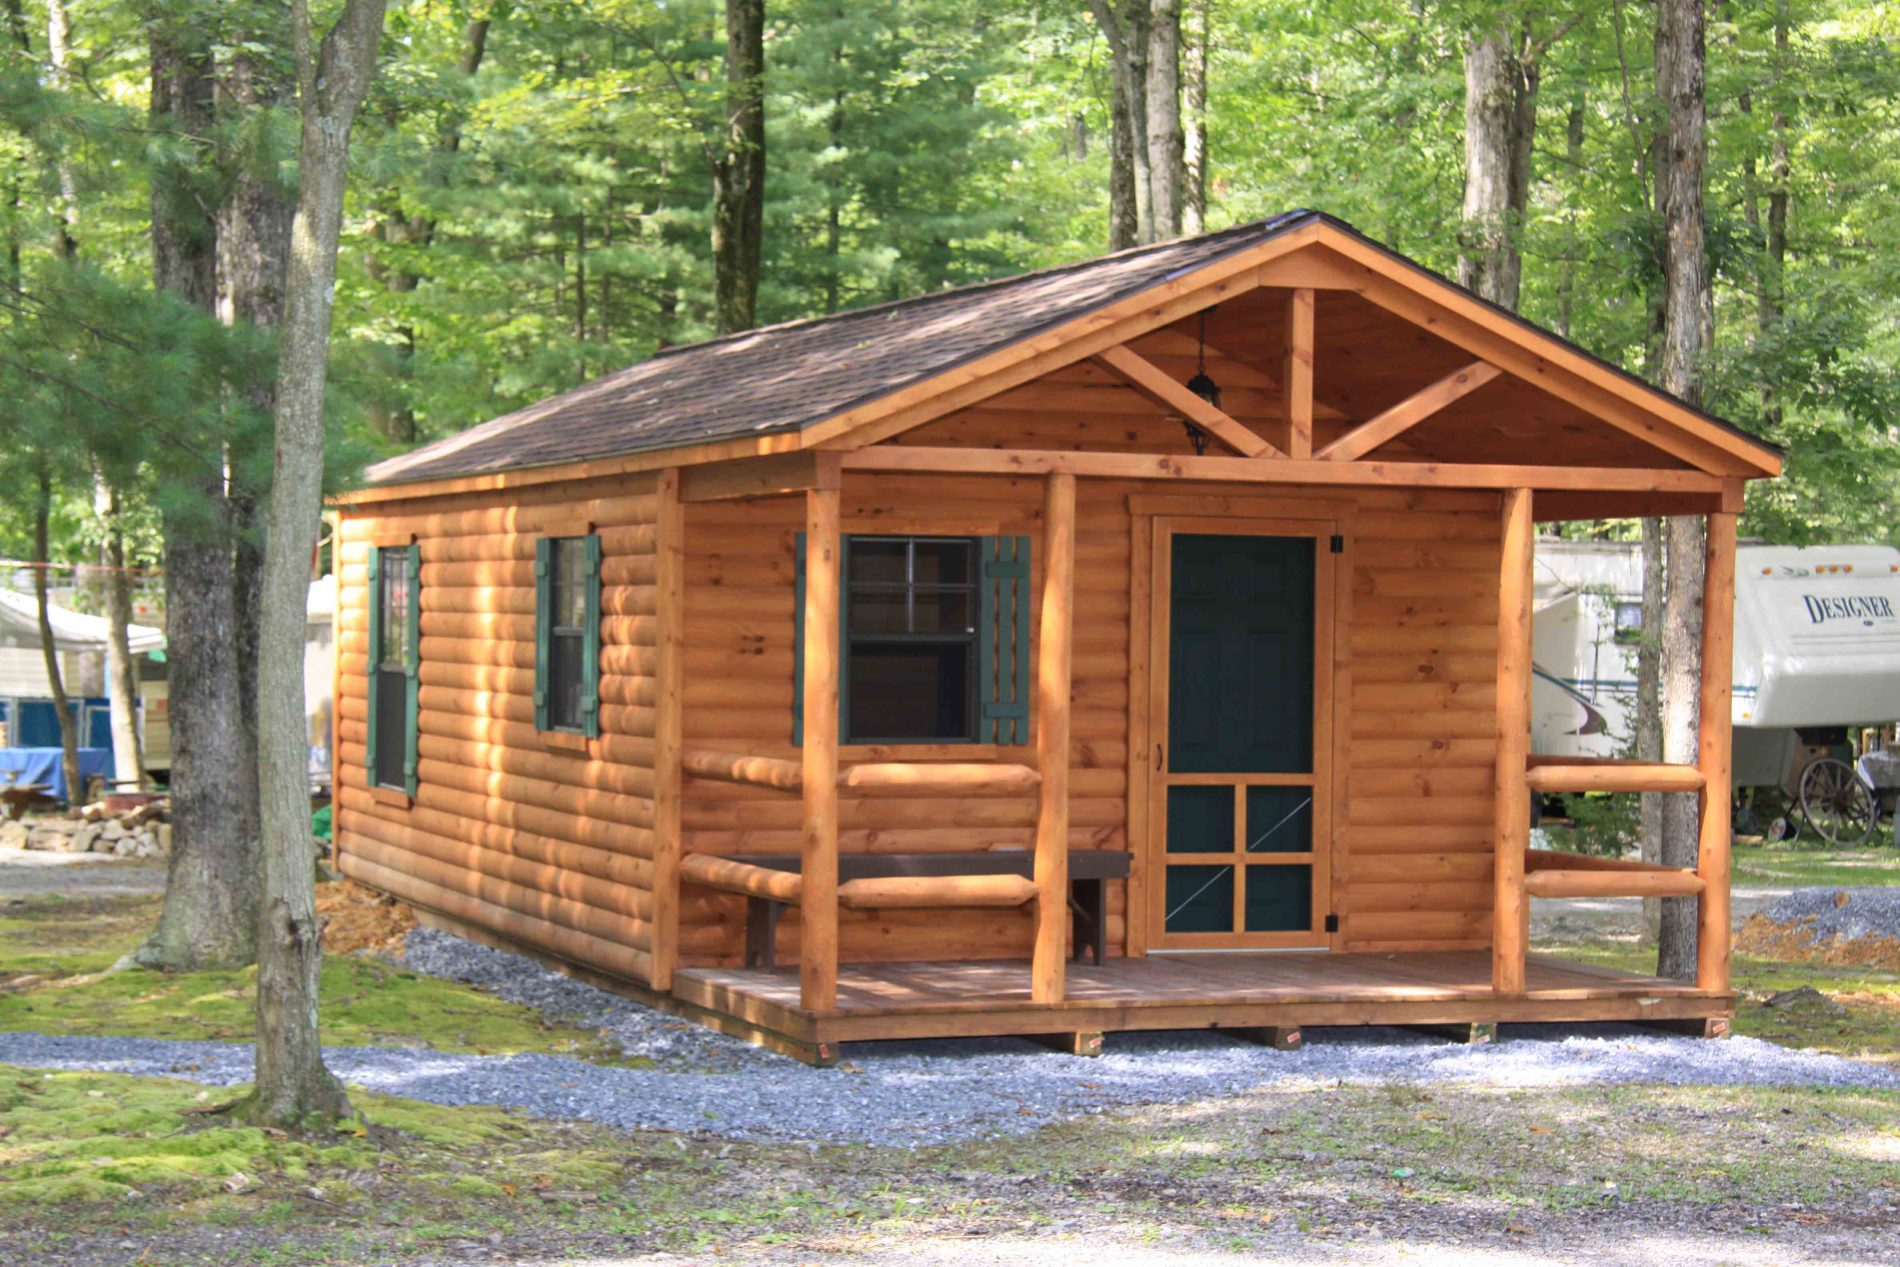 Campground rustic log cabins and kits for sale zook cabins for Large cabin kits